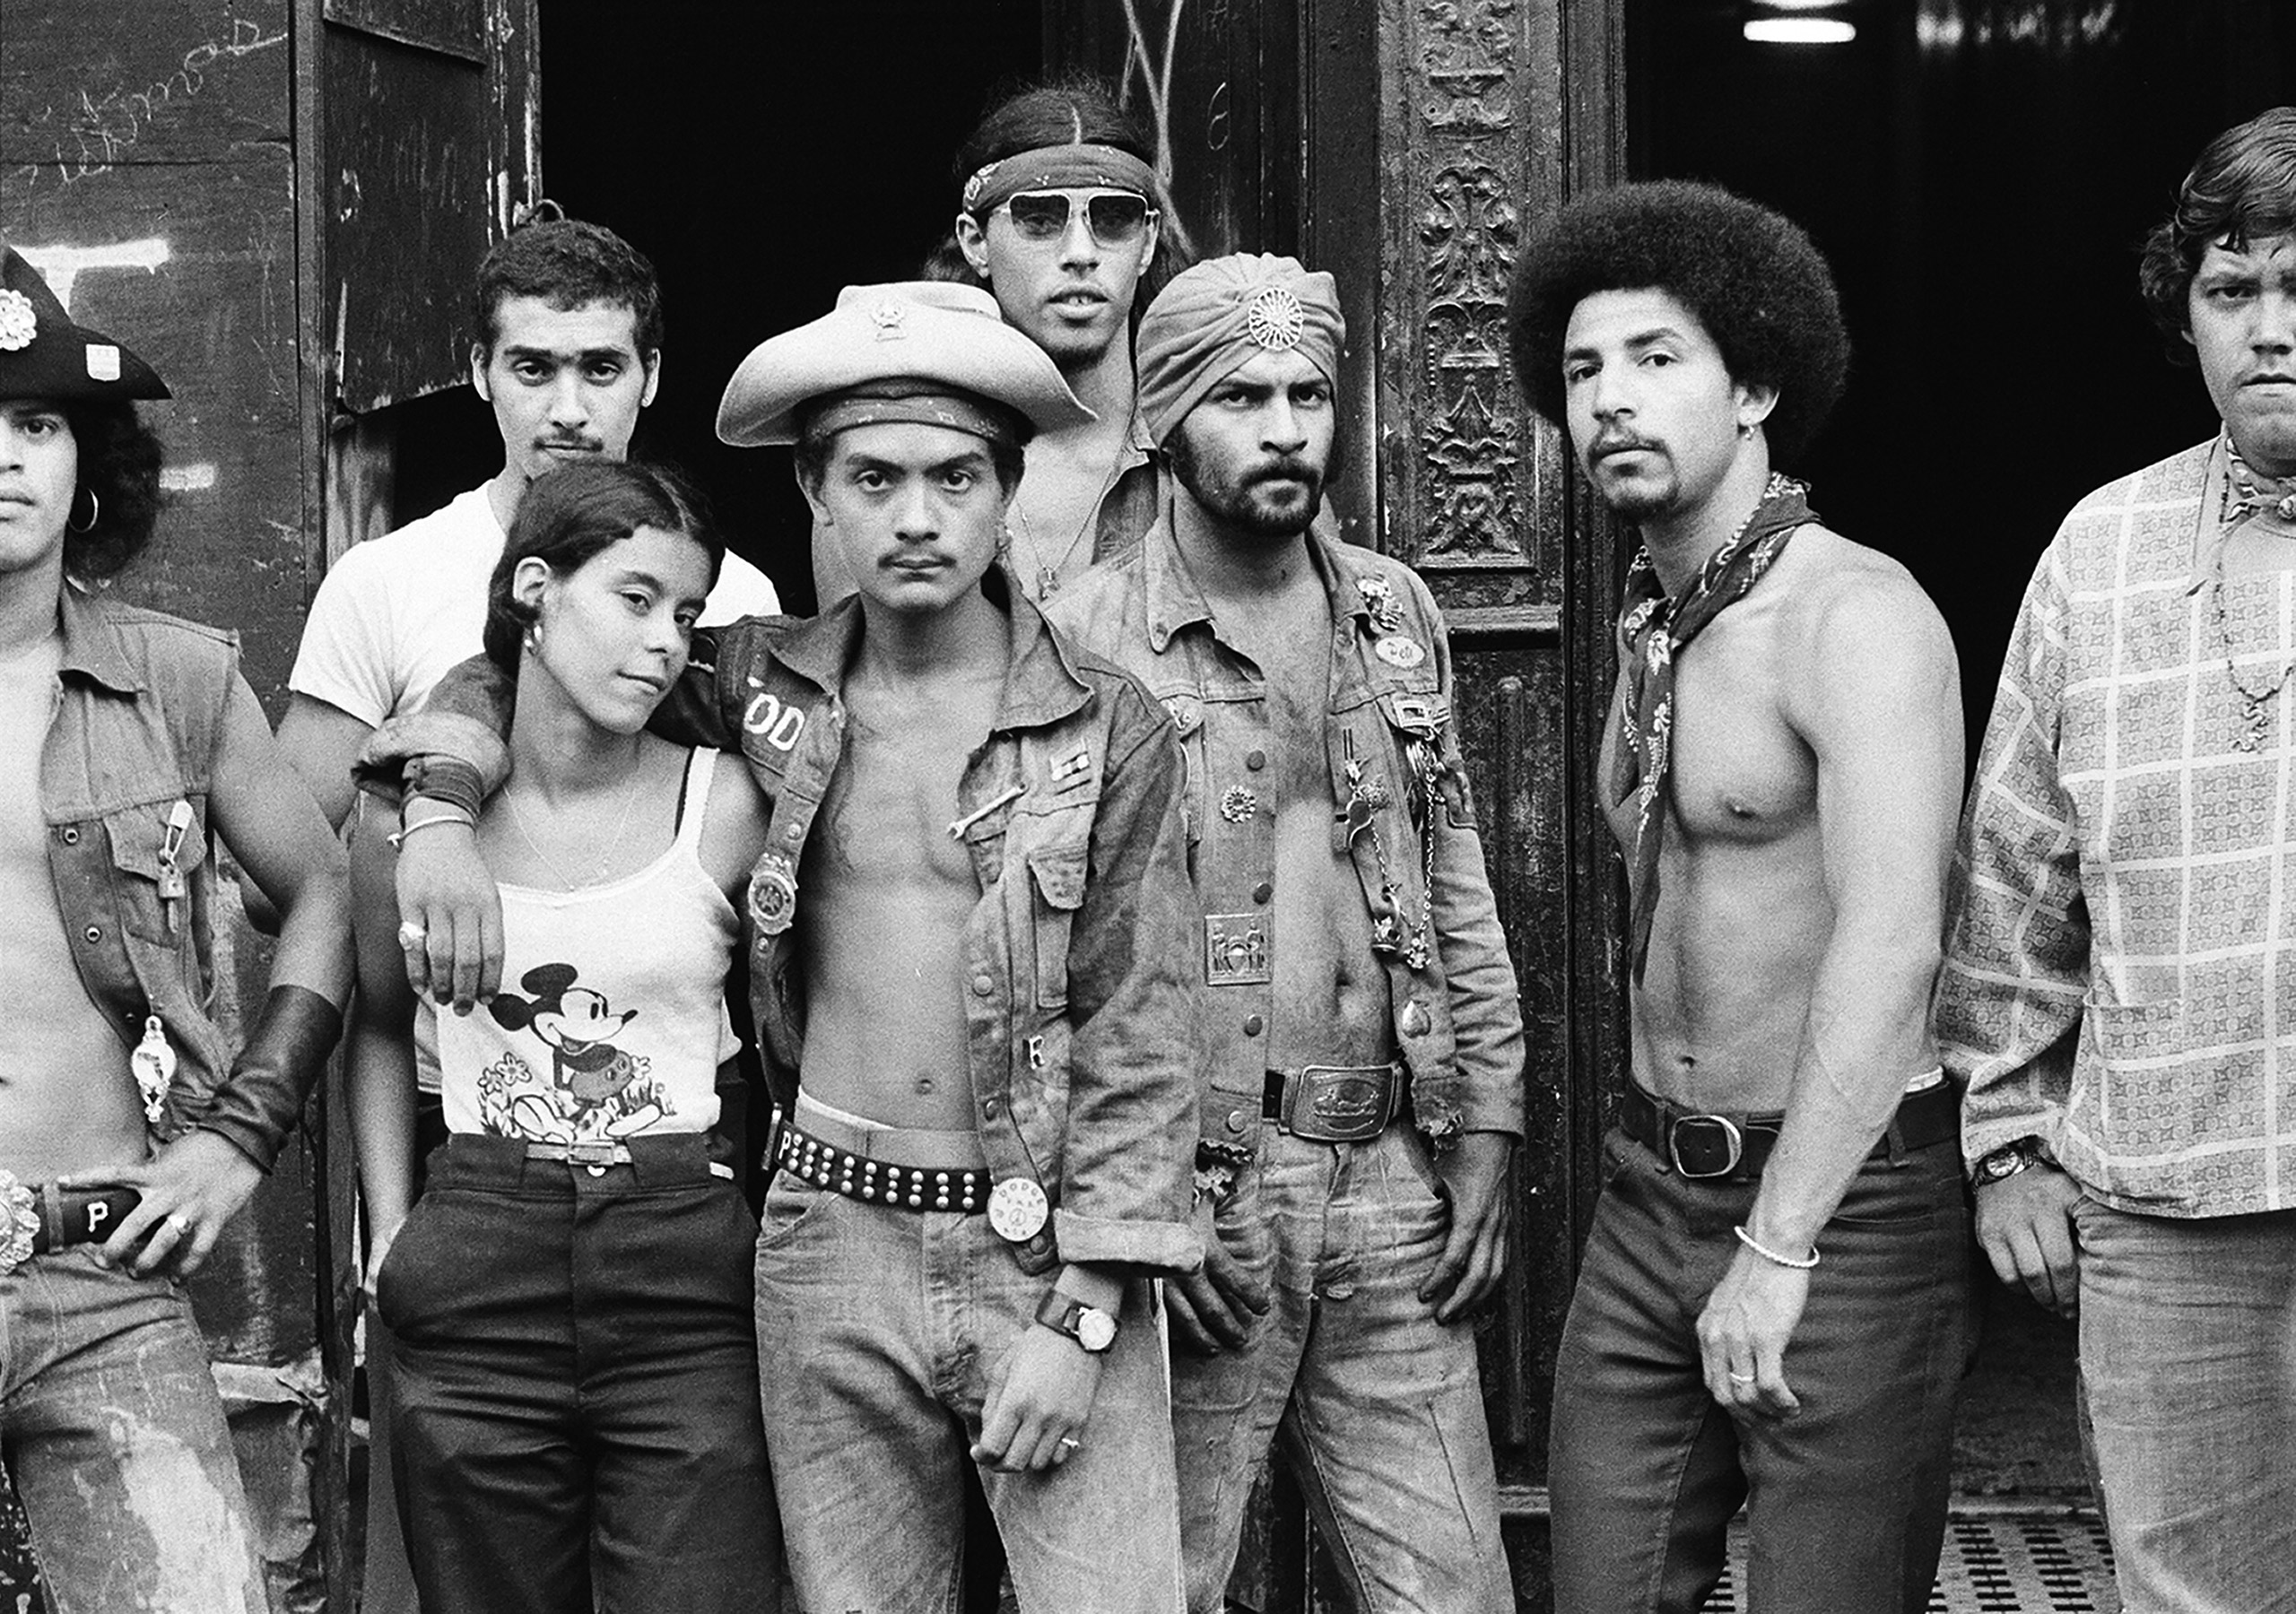 Group portrait of members of Bronx street gang the Dragons, 1975.